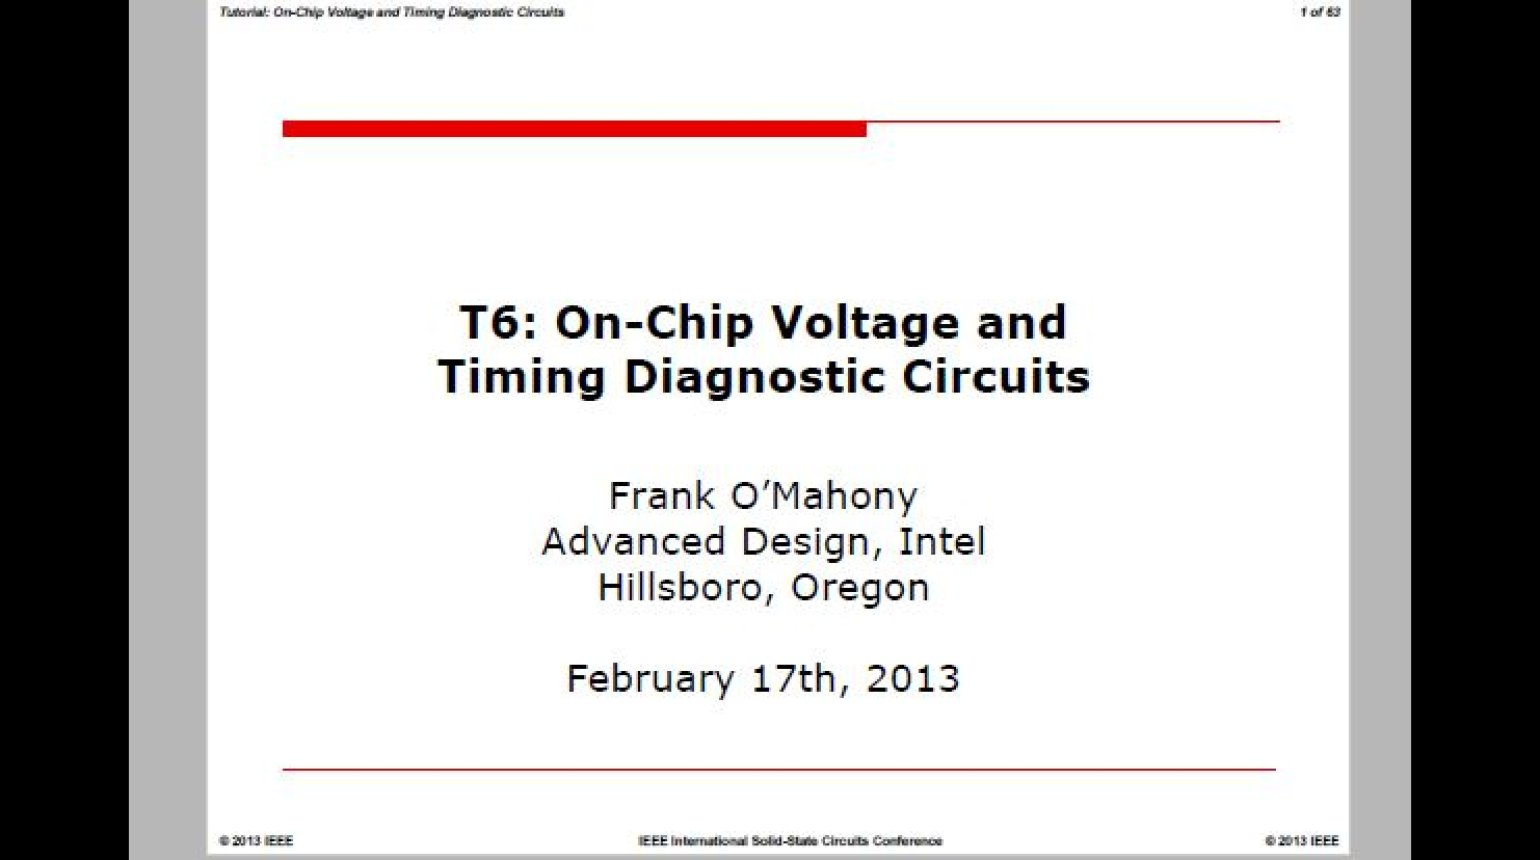 On Chip Voltage and Timing Diagnostic Circuits Video